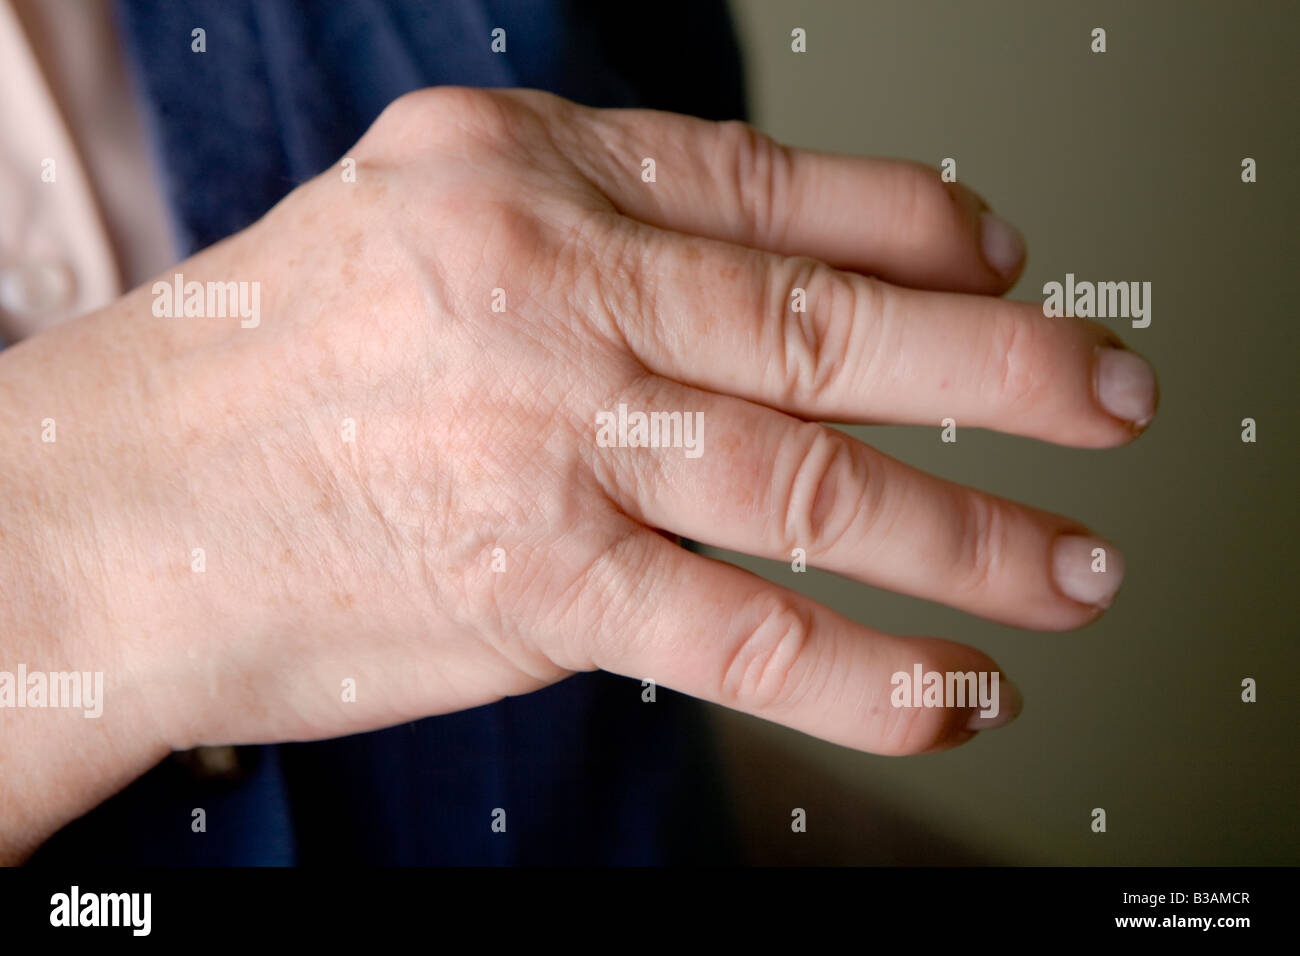 Psoriatic arthropathy hand of a woman of 60 years old - Stock Image